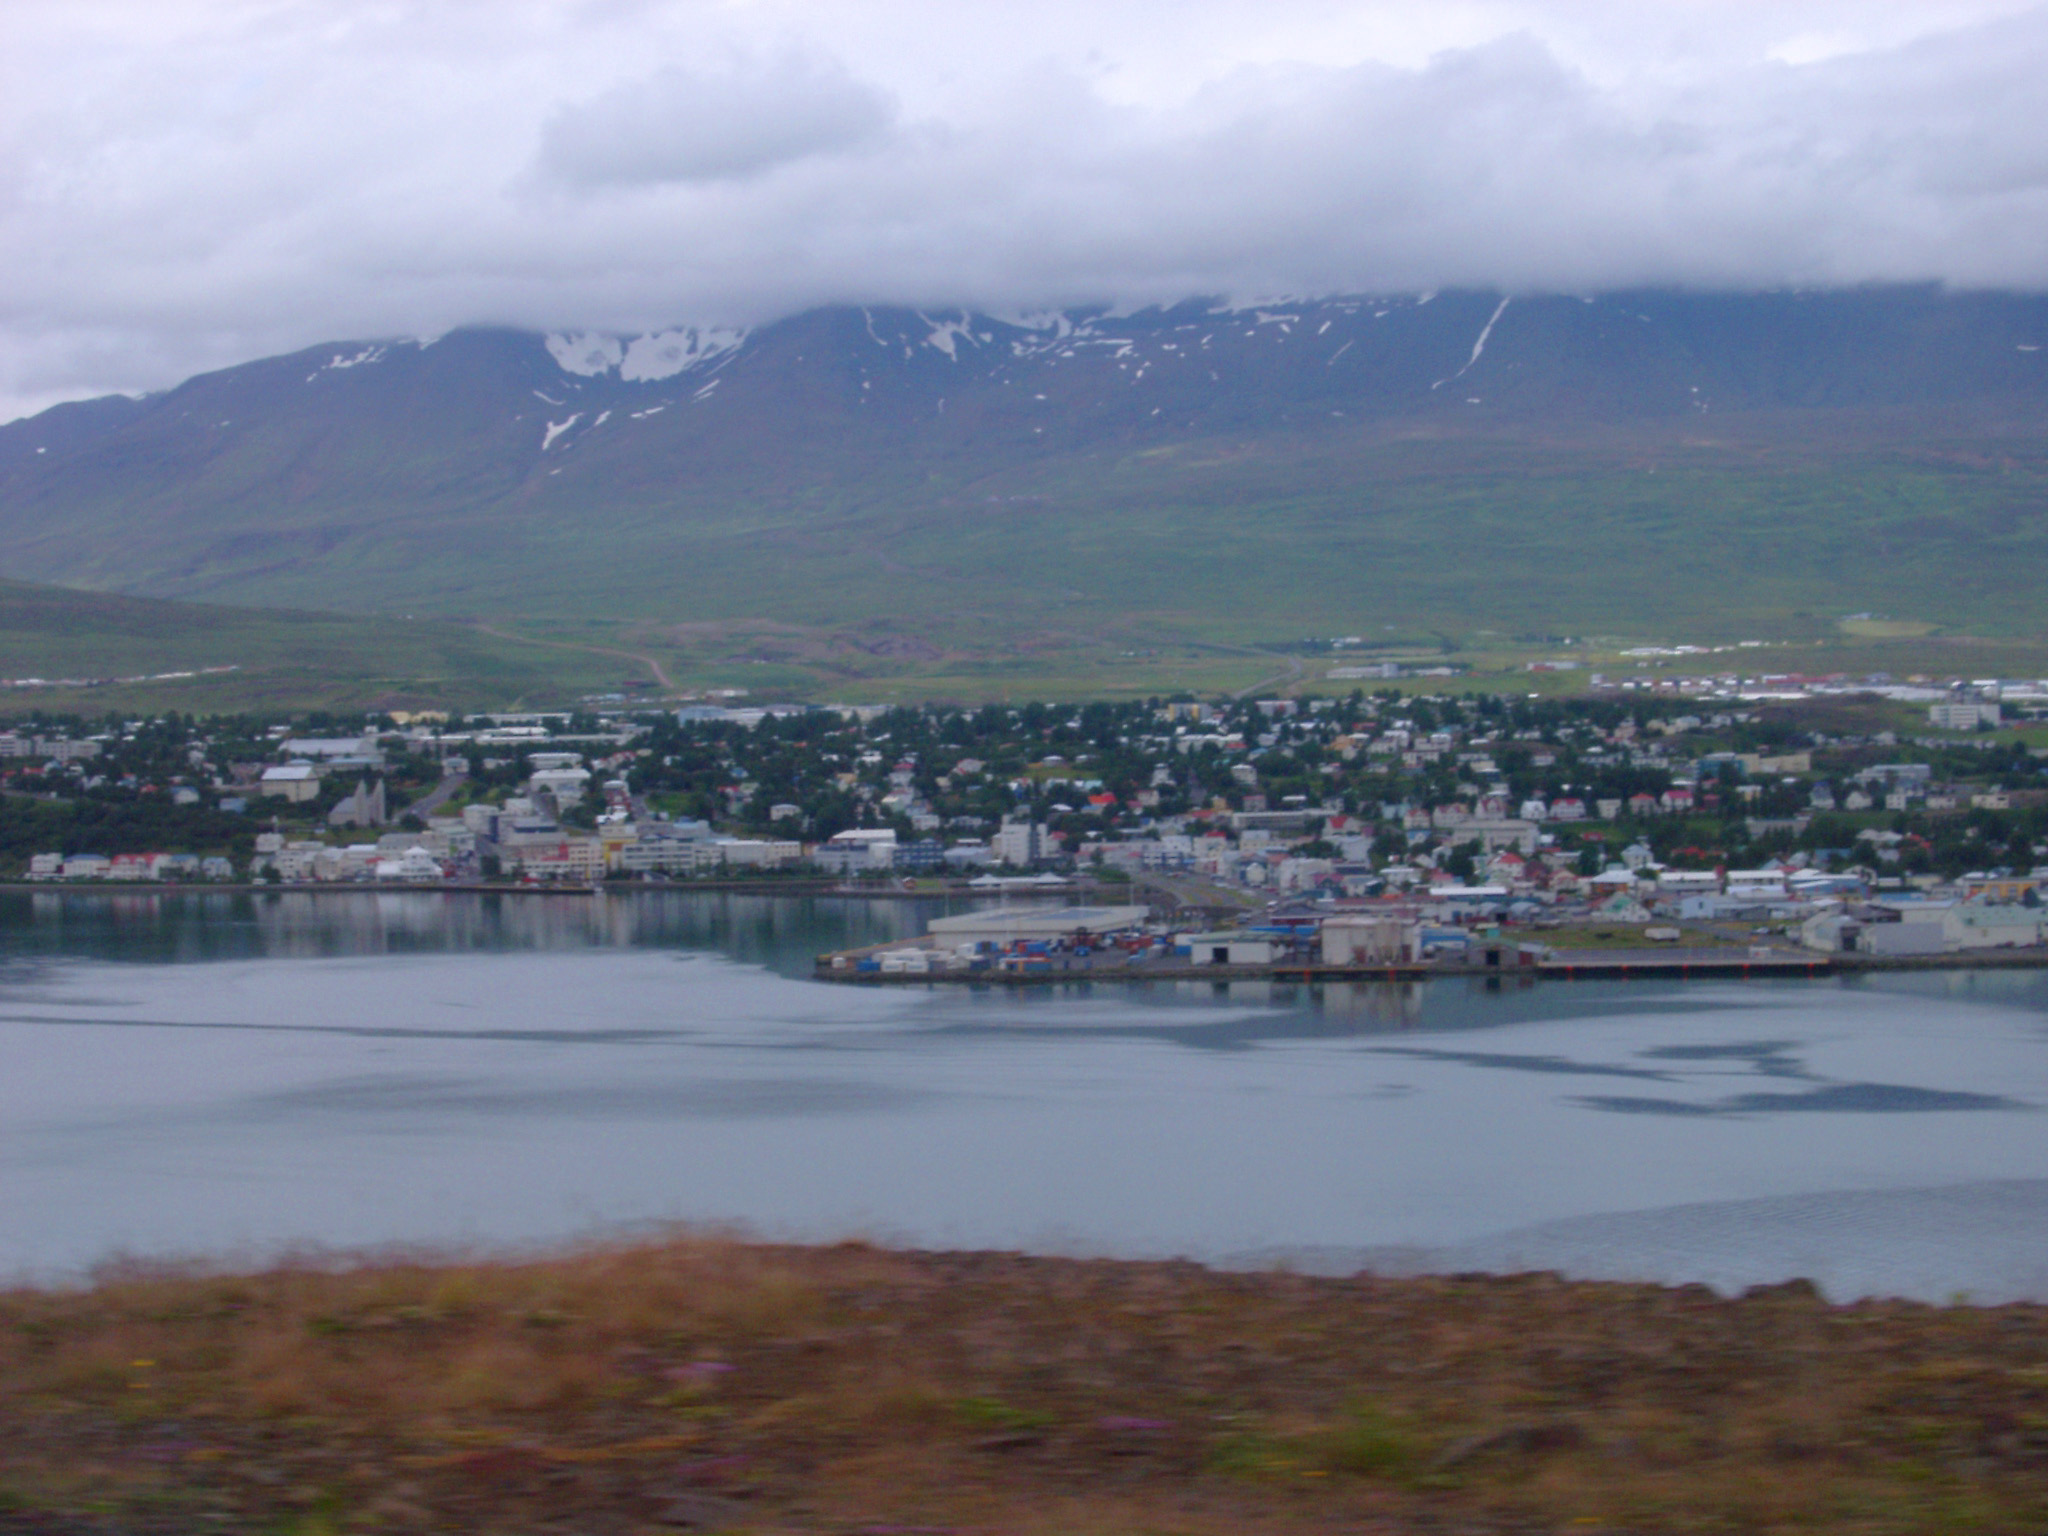 Town of Akureyri and Eyjafjorour Fjord and Mountains in Background in Northern Iceland